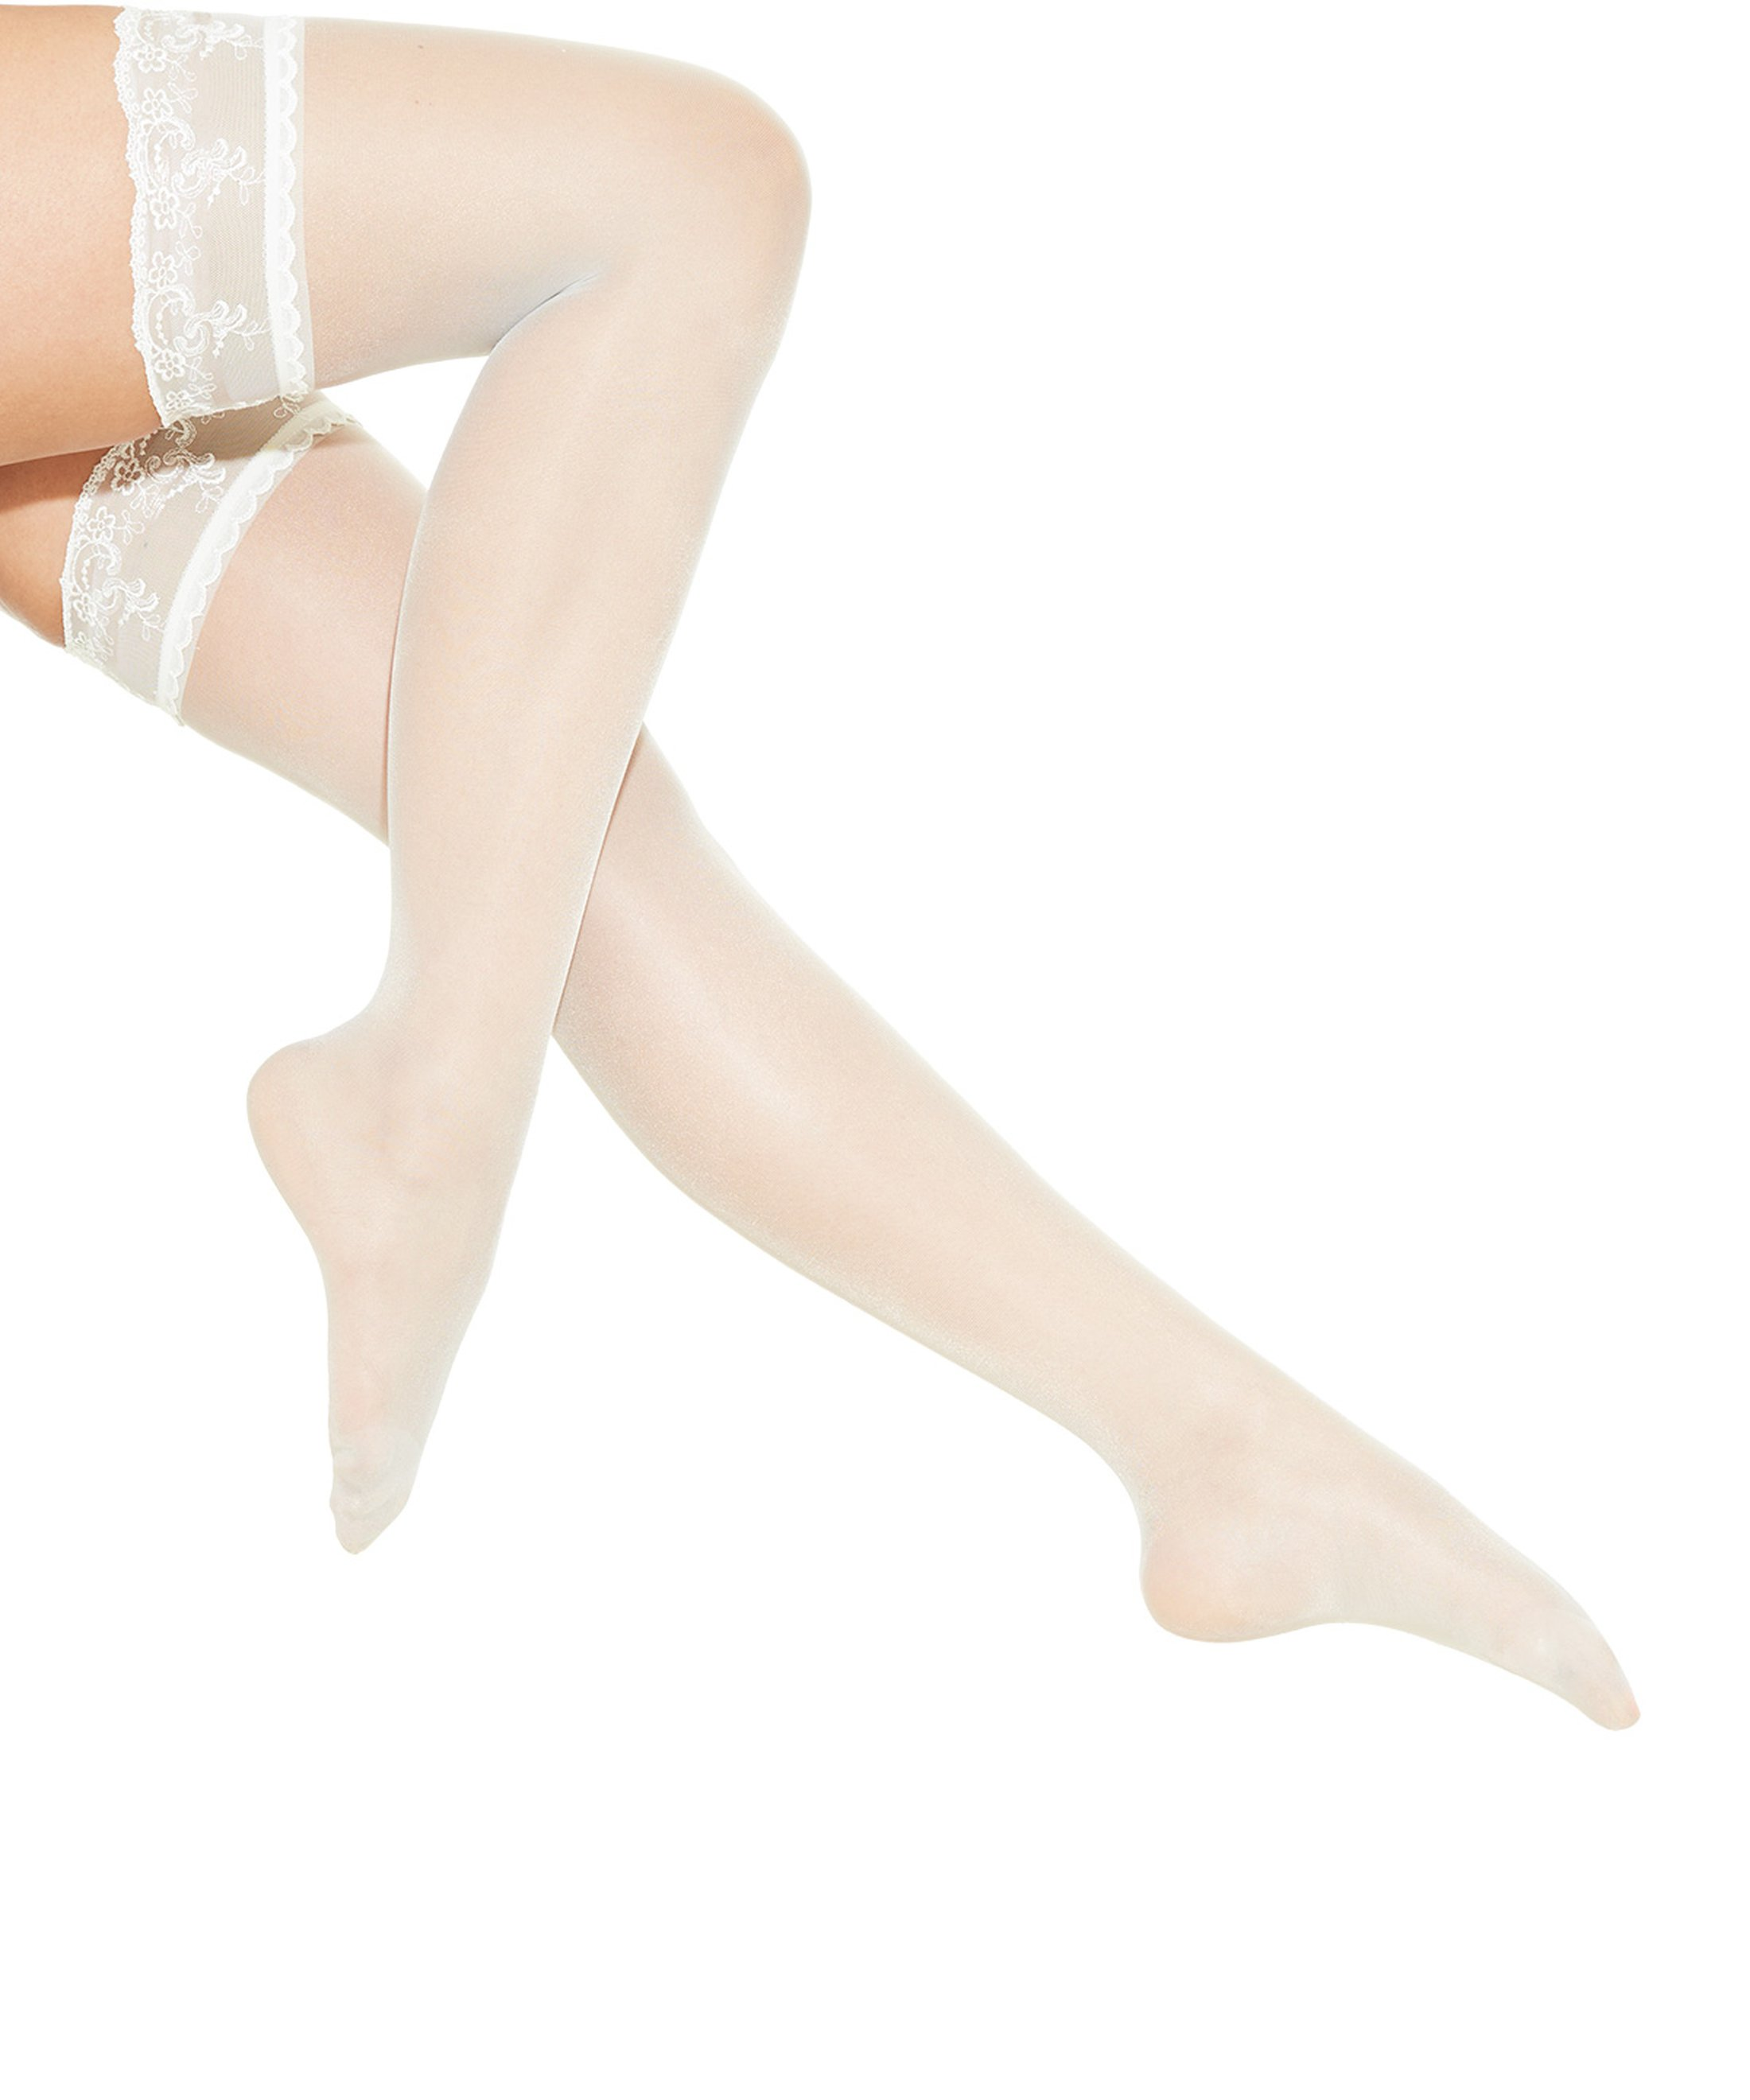 AUBADE À L'AMOUR Stockings Nacre | Aubade